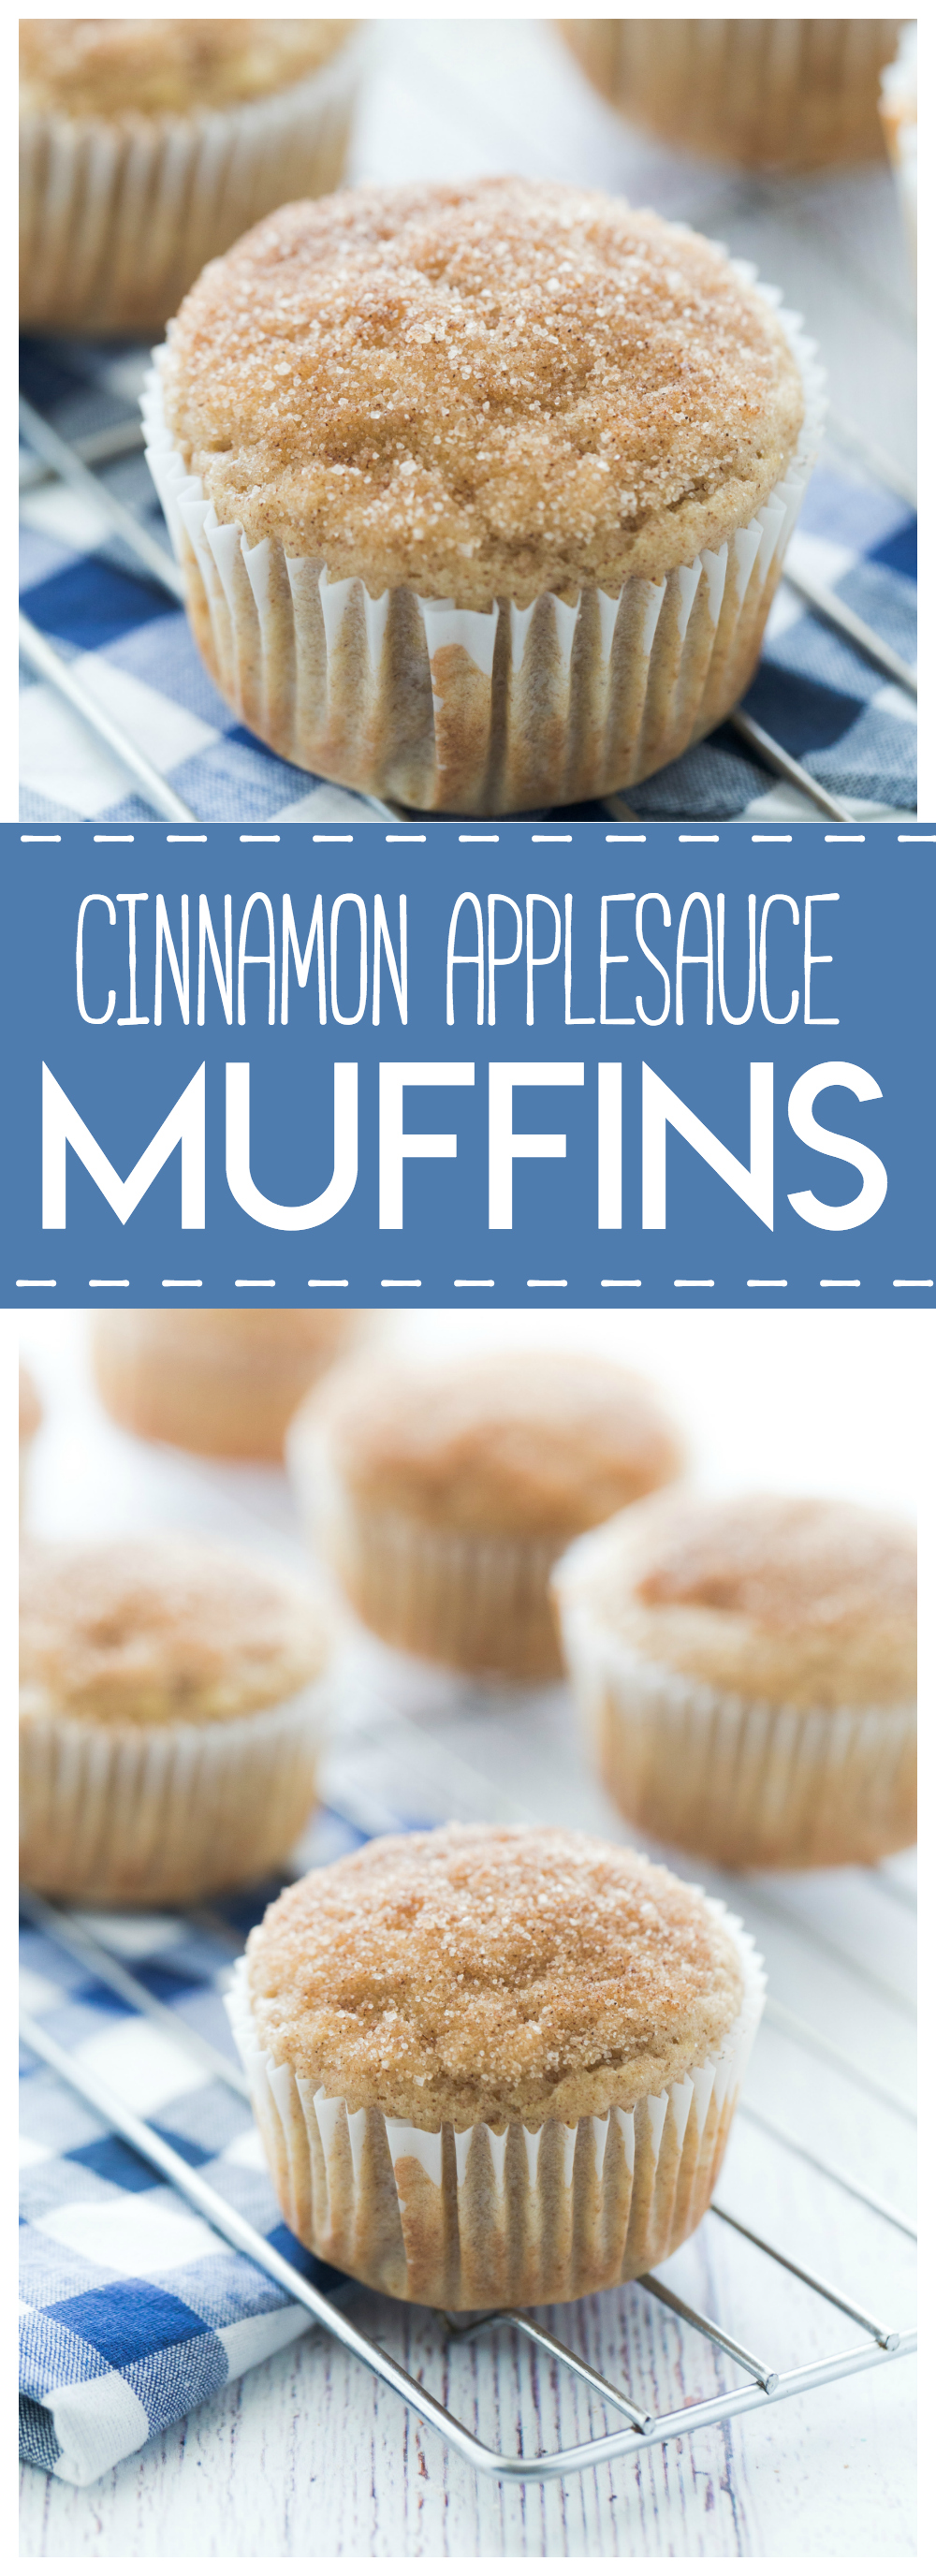 Cinnamon Applesauce Muffins: delicious and simple muffins that are bursting with a sweet cinnamon flavor.